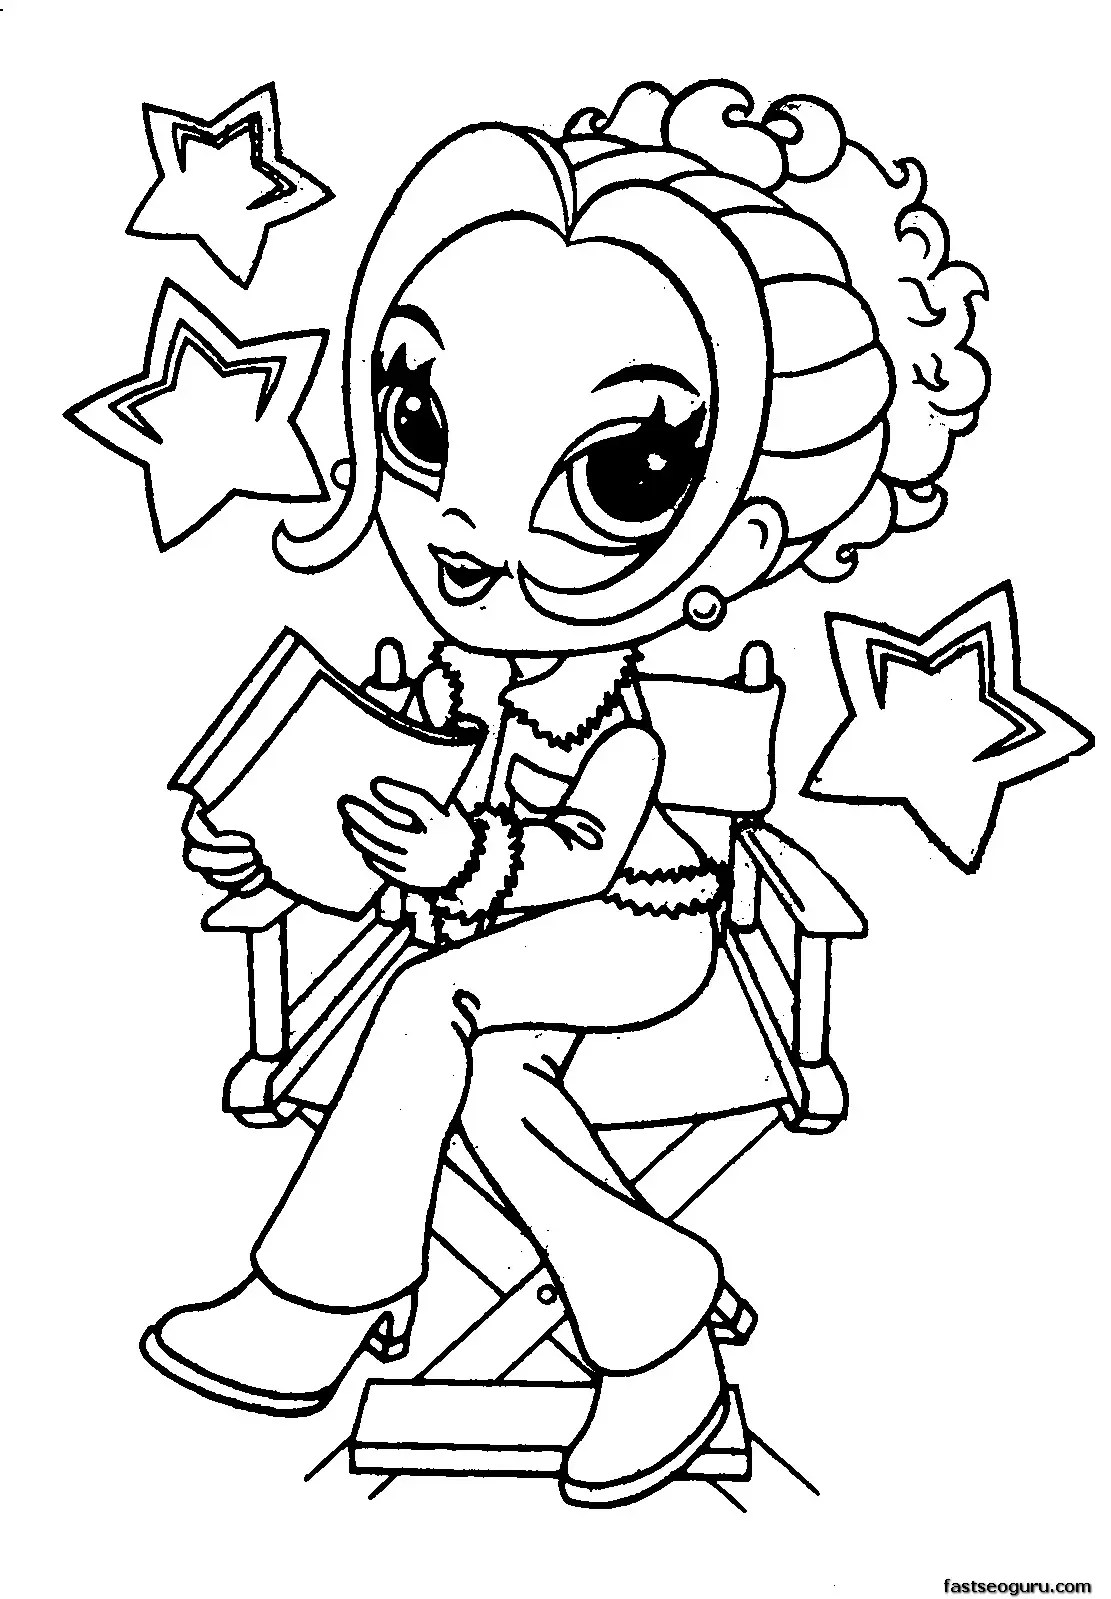 Coloring Pages For Girls 10 And Up